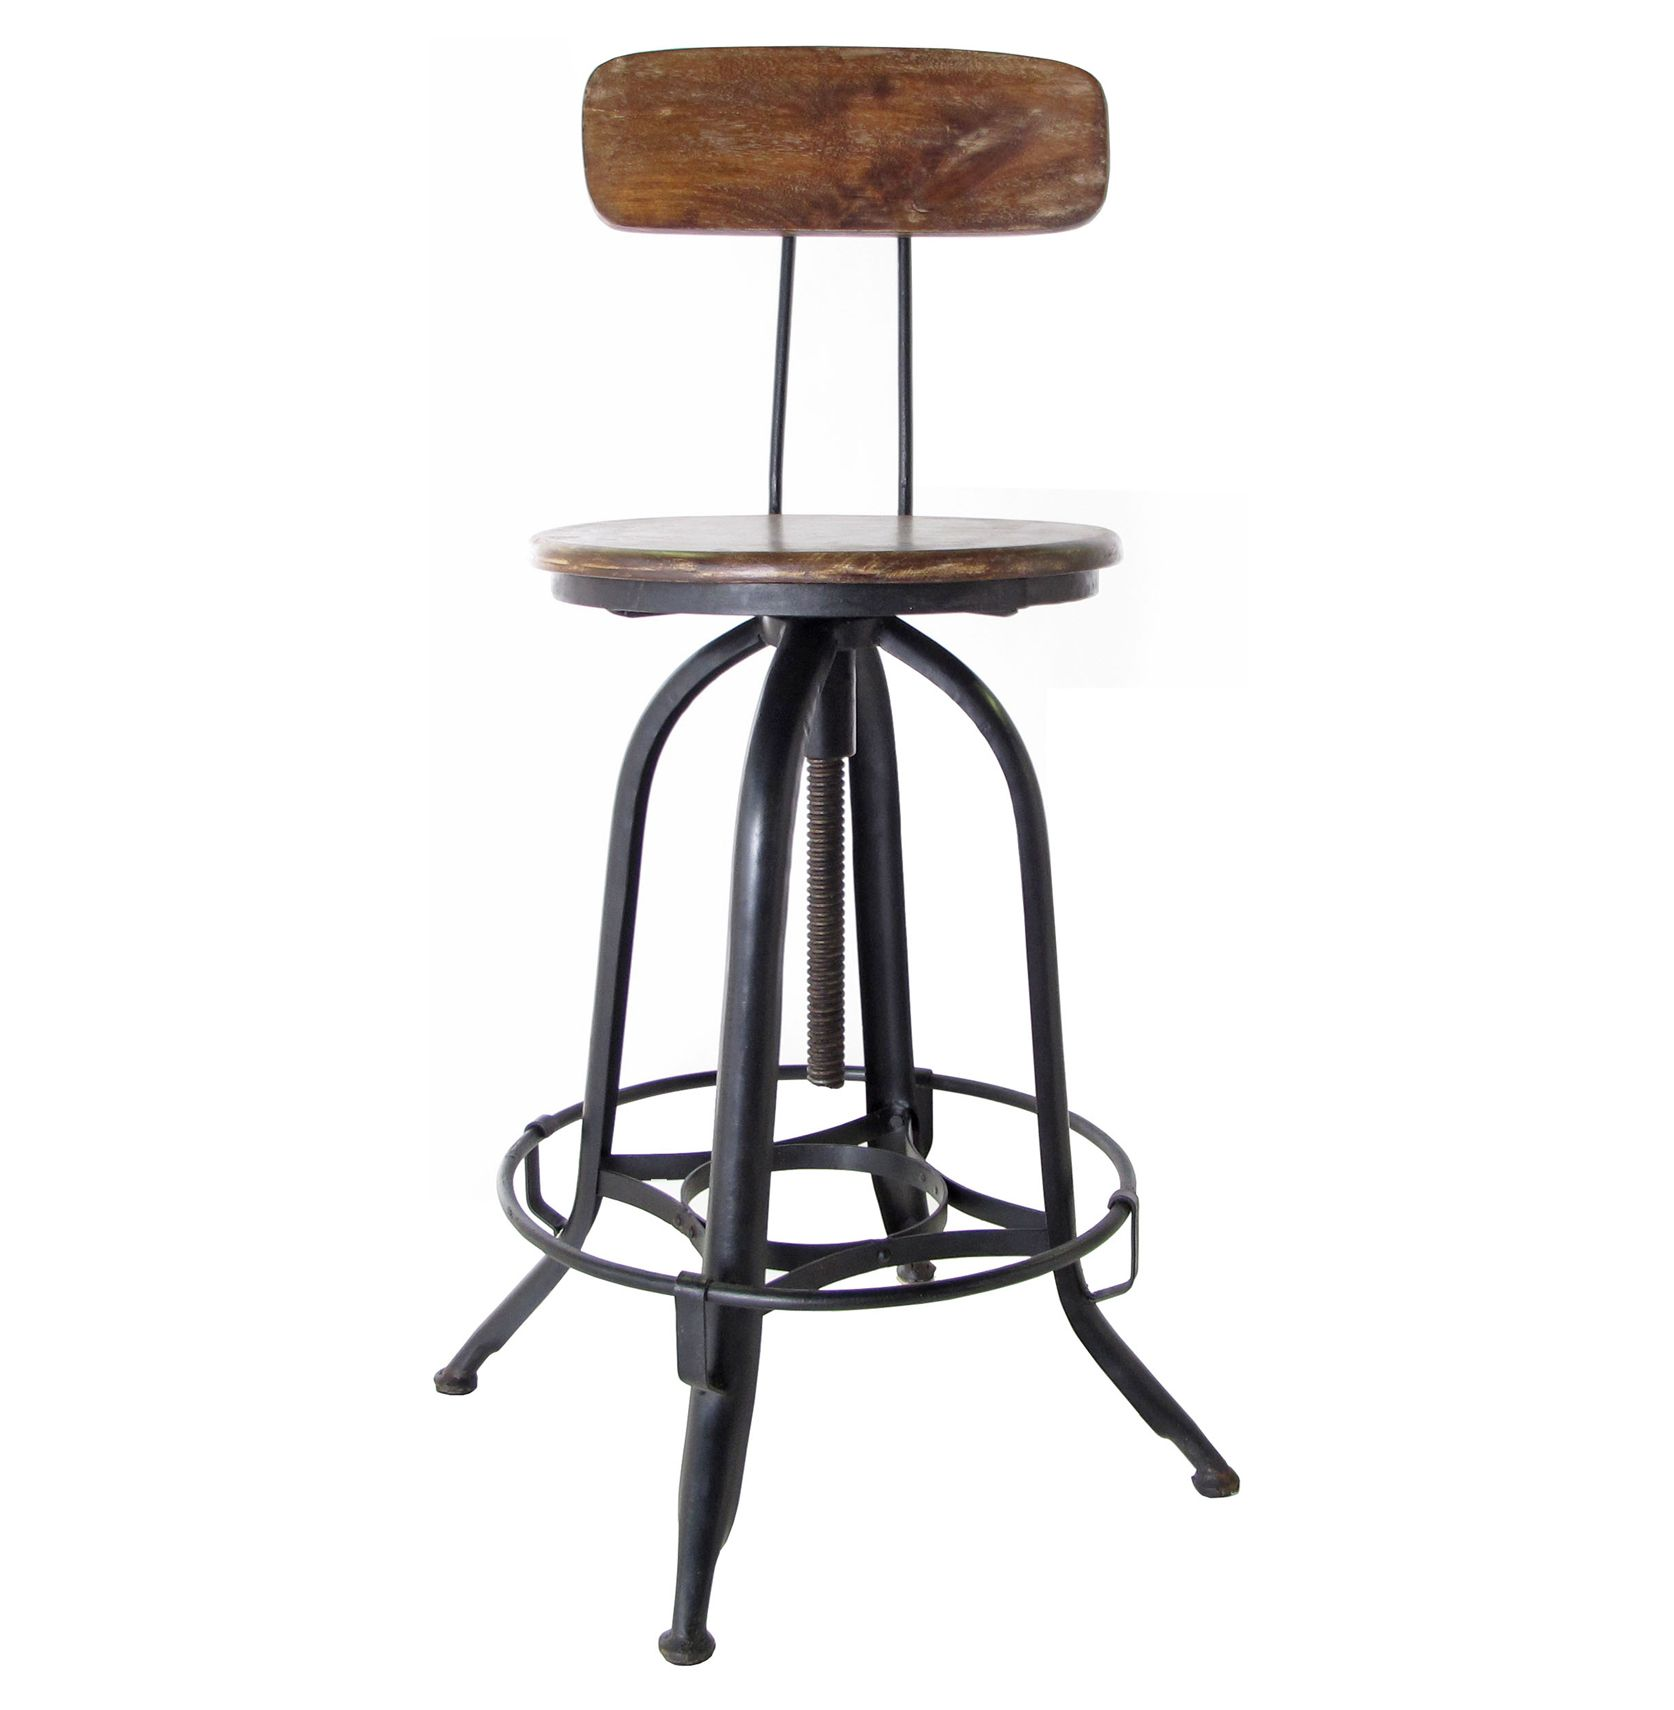 Architect S Industrial Wood Iron Counter Bar Swivel Stool With Back Stools With Backs Counter Stools With Backs Bar Stools With Backs